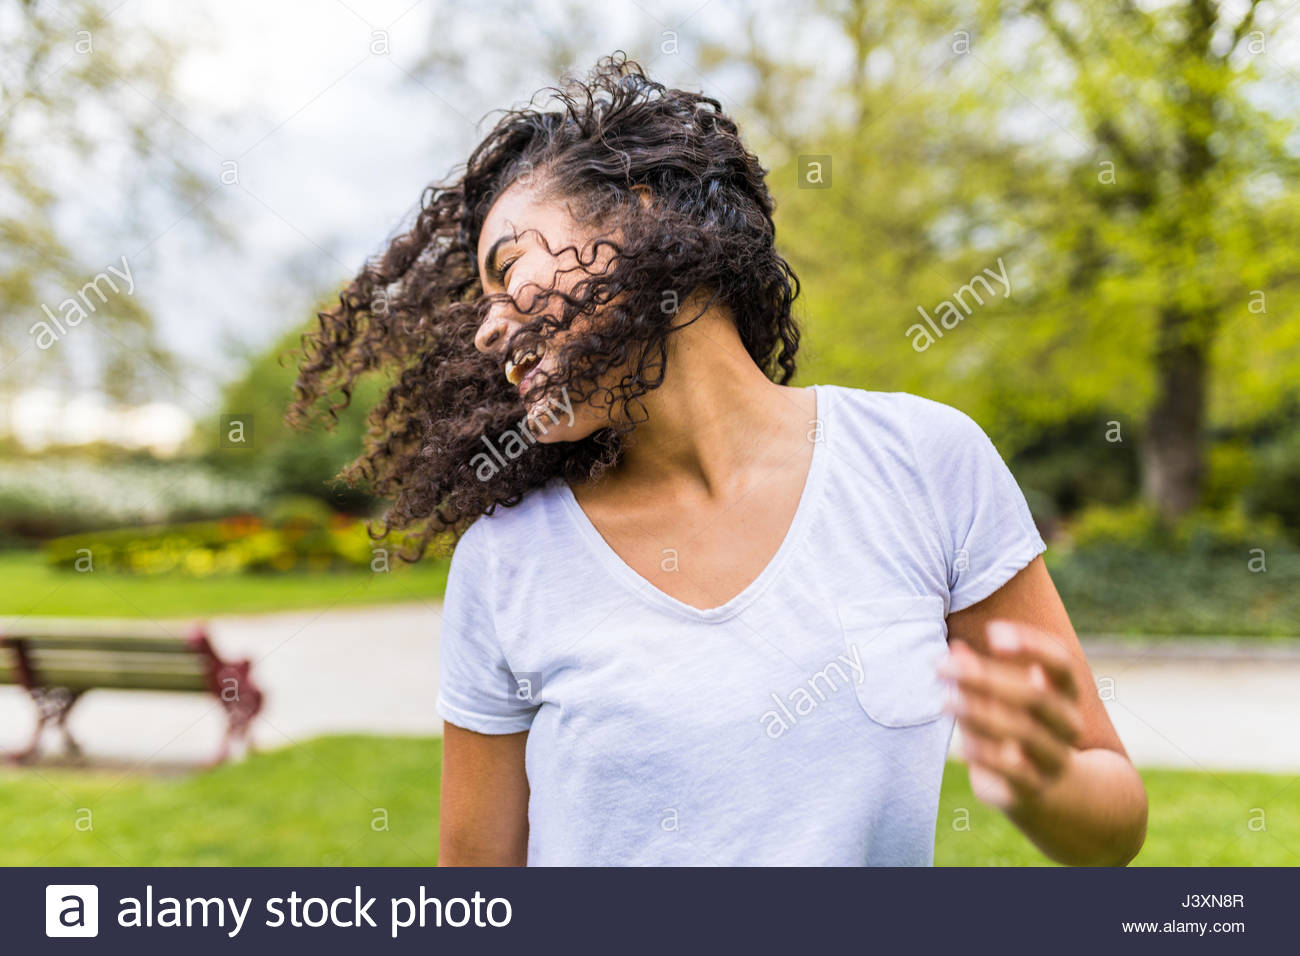 Young woman with long curly hair dancing in Battersea Park - Stock Image